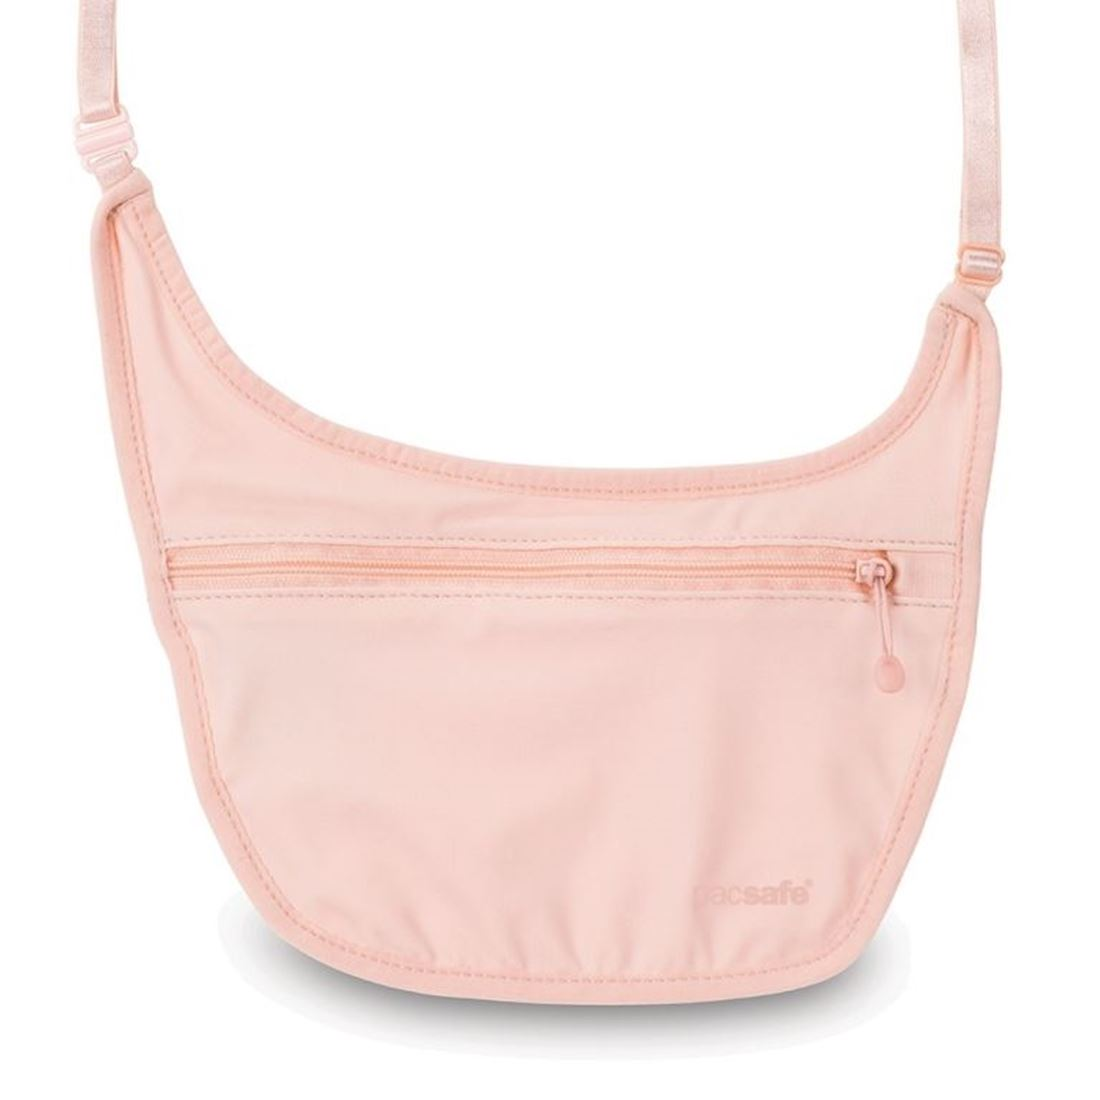 Picture of Pacsafe Coversafe S80 Secret Body Pouch - Orchid Pink